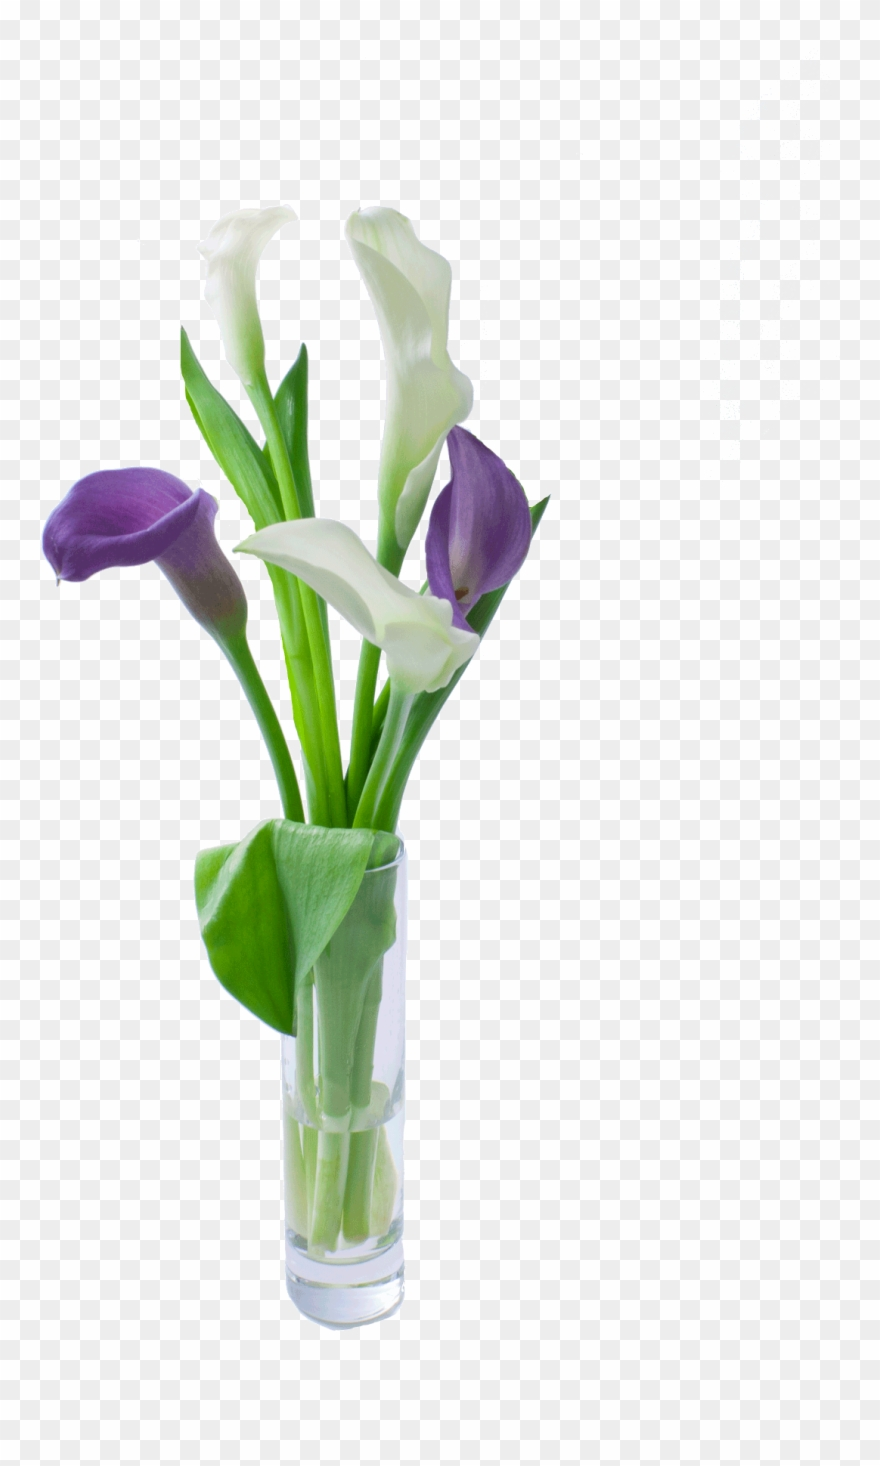 Purple calla lily clipart freeuse Grower Recommendations - Calla Lily Clipart (#1752476 ... freeuse